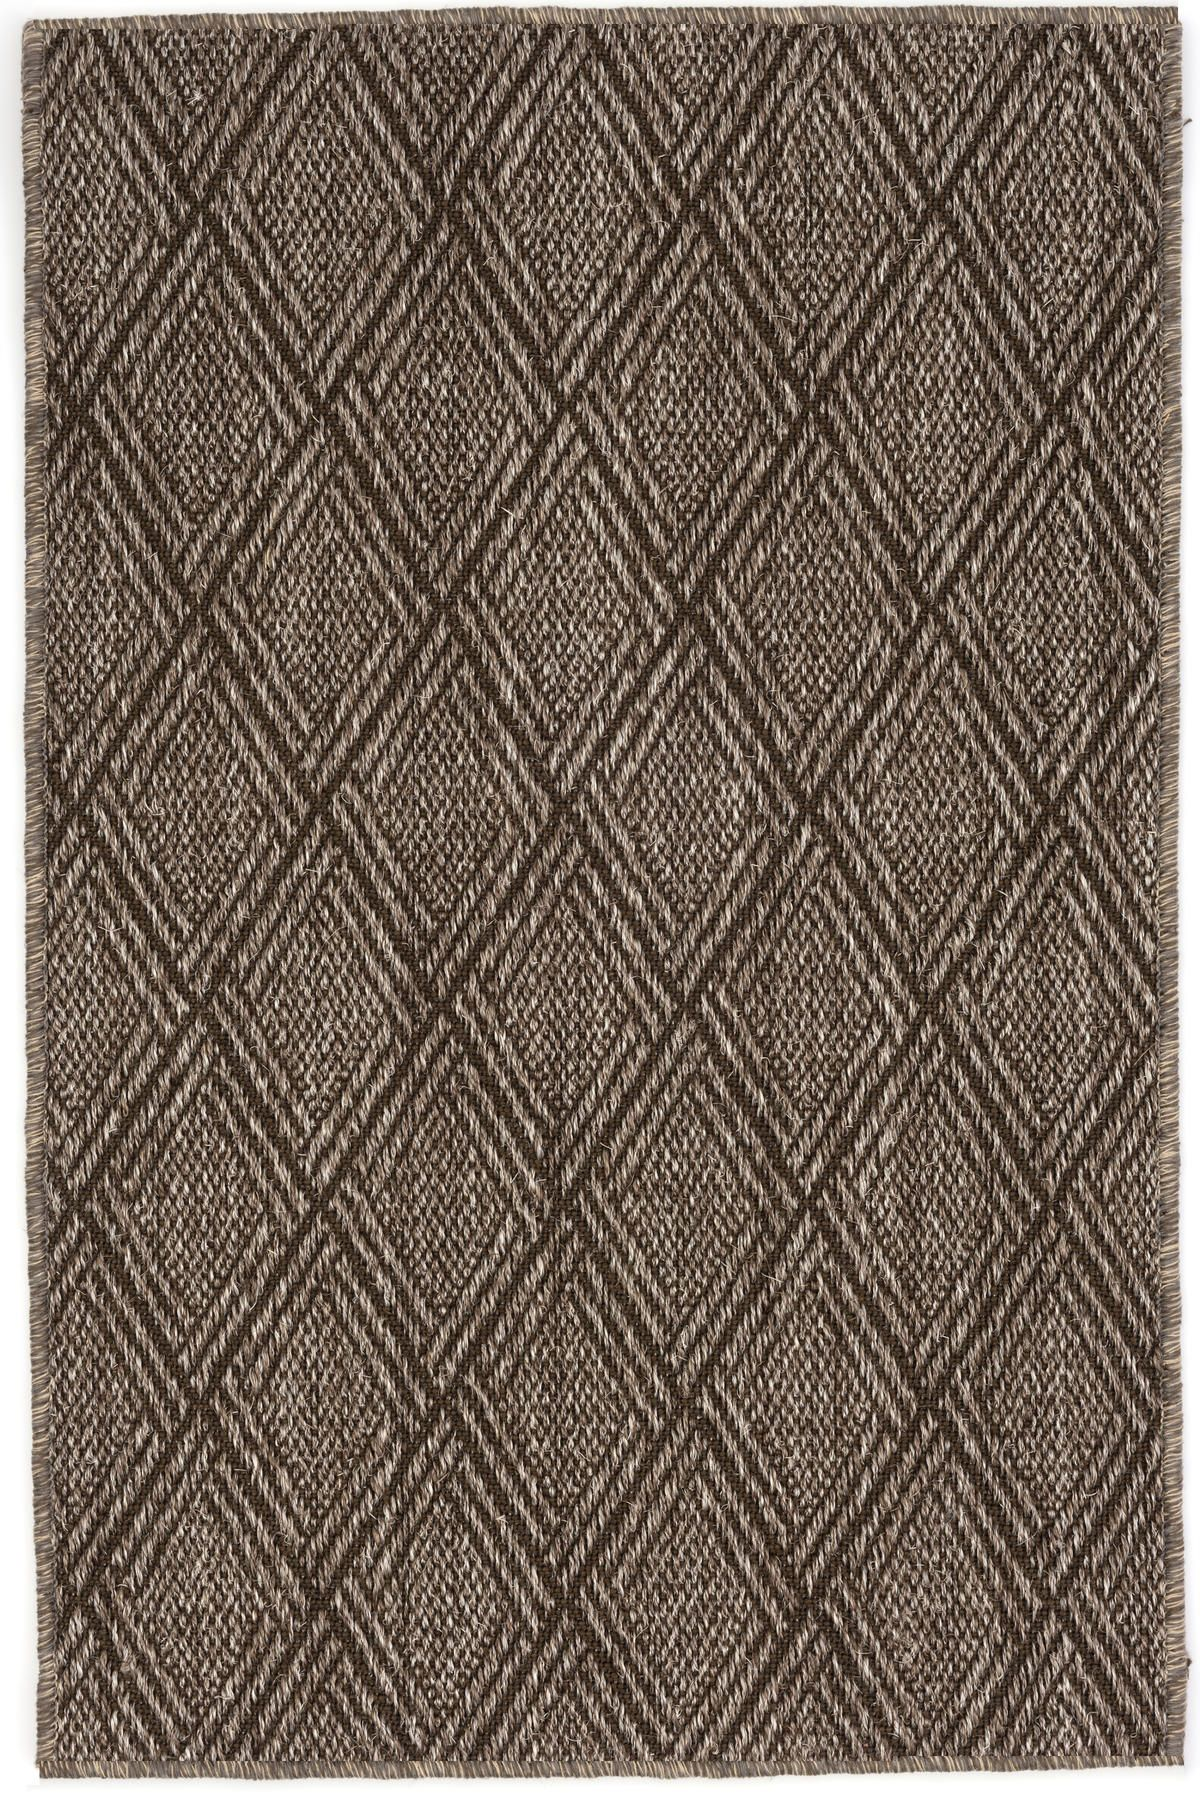 rugs small sisal mainstays faux mat or ideas area mats runner rug